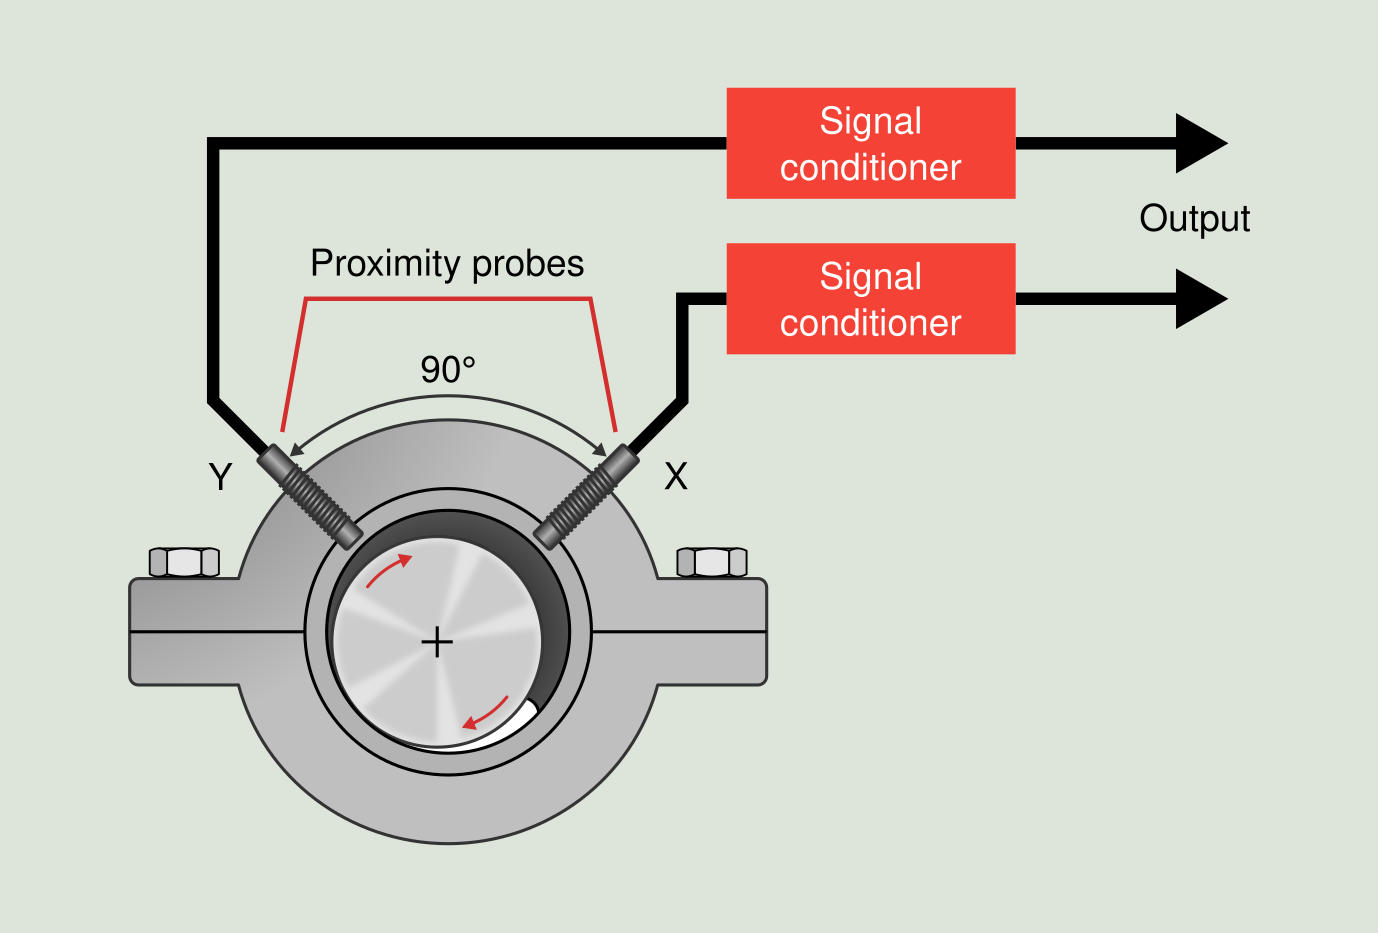 Figure 3.3: Sleeve bearing installation of proximity probes